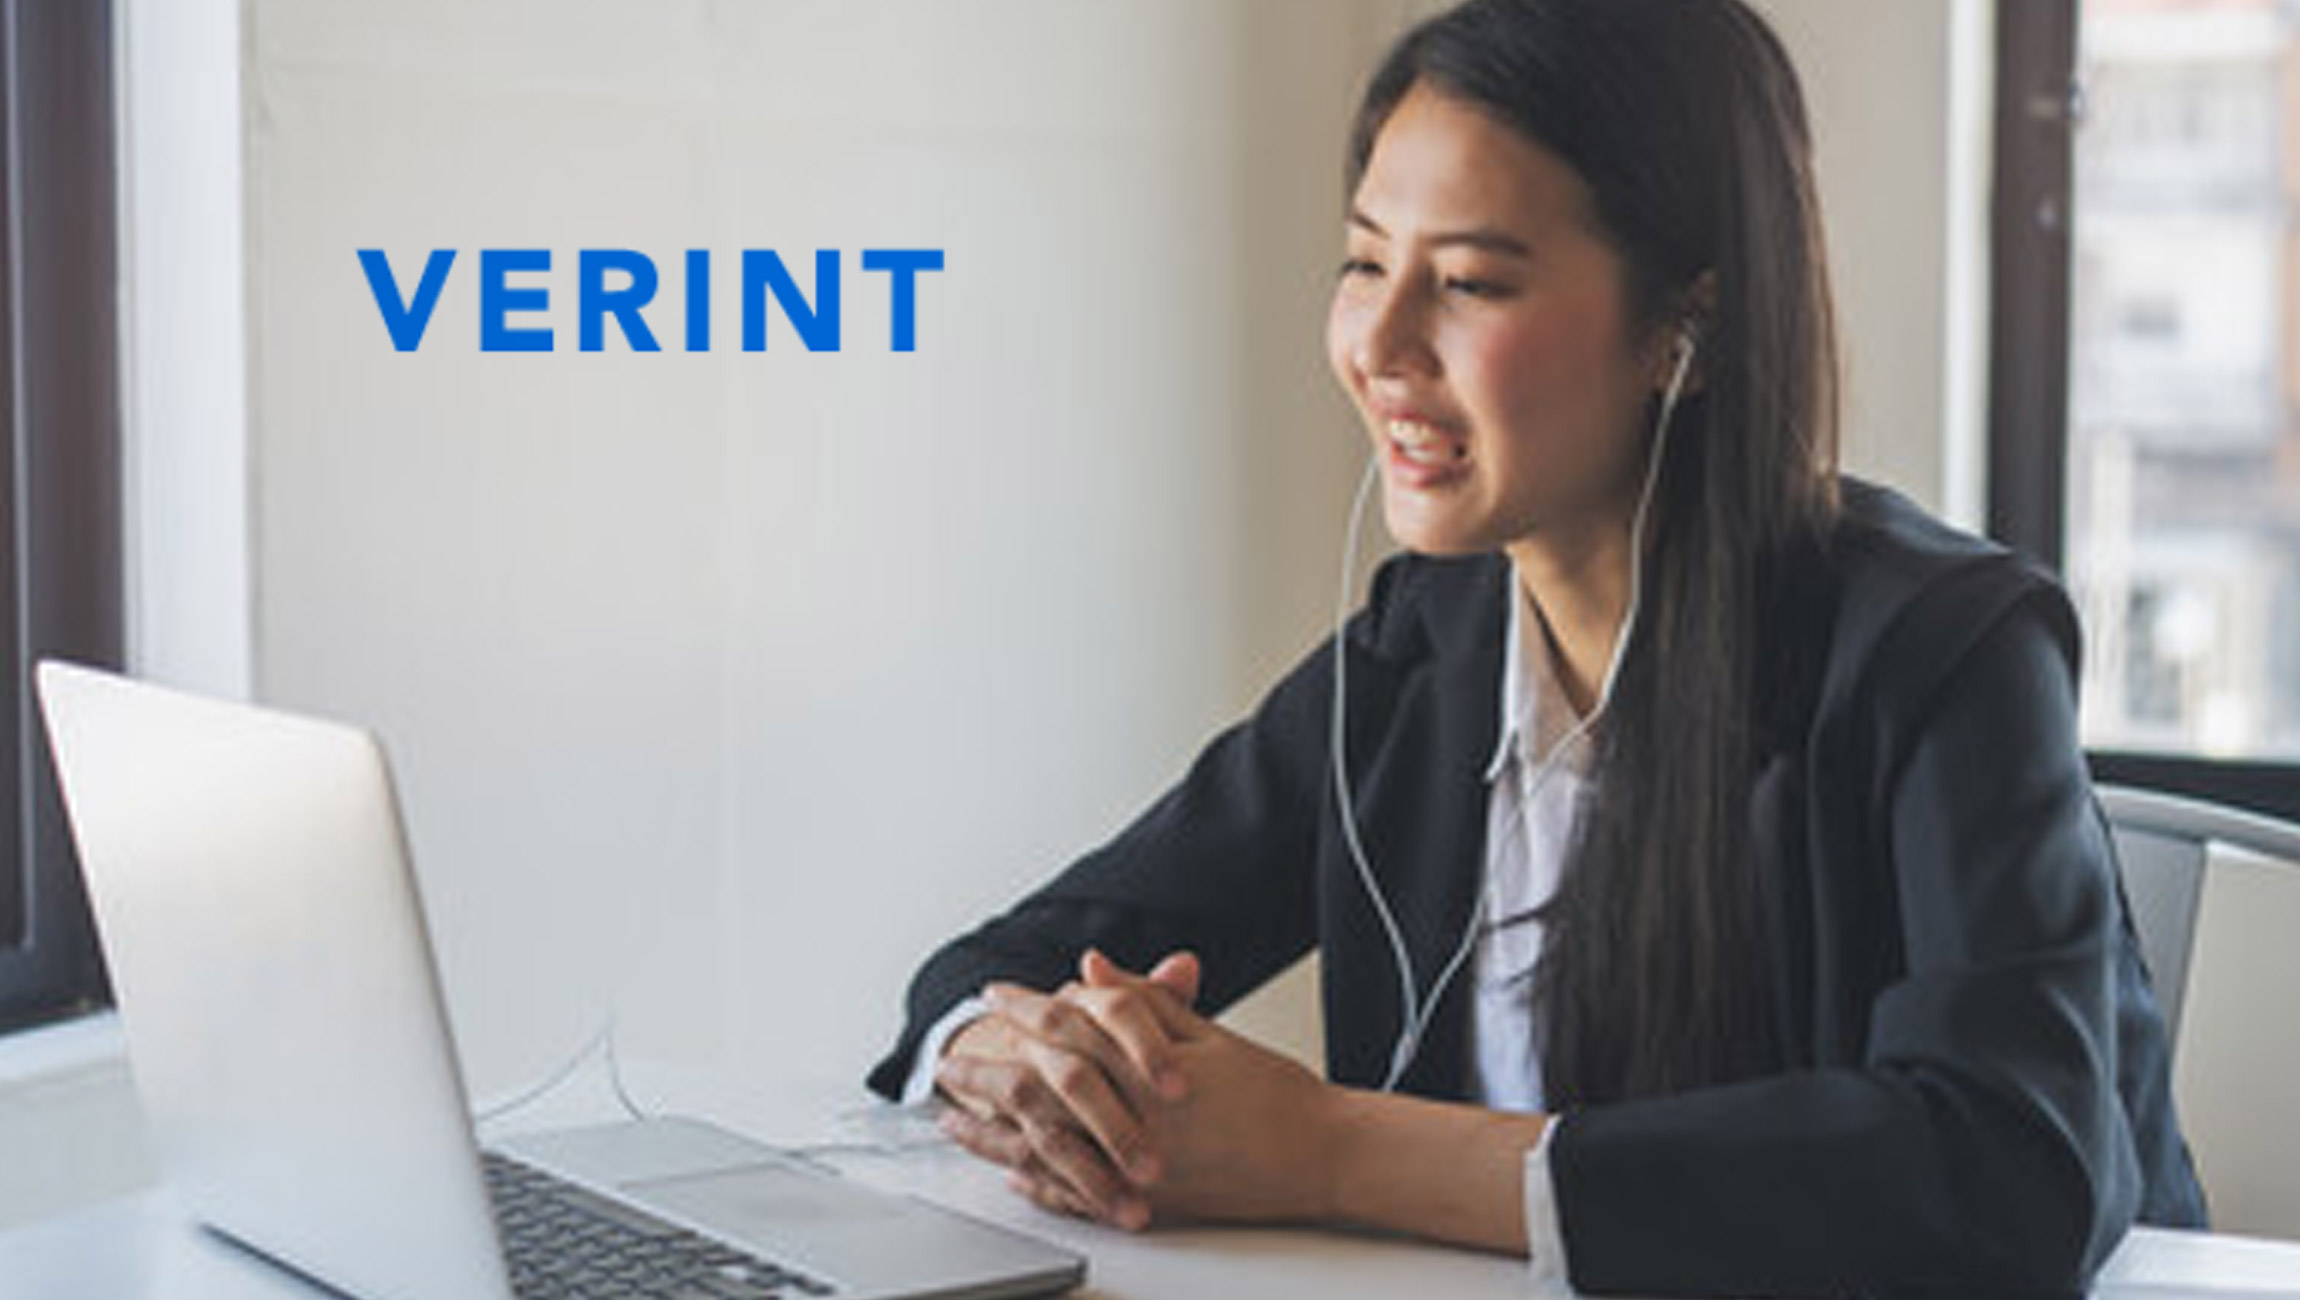 Verint-June-Speaker-Line-up-Focuses-on-Driving-Better-Customer-Engagement-in-Government_-Banking-and-More